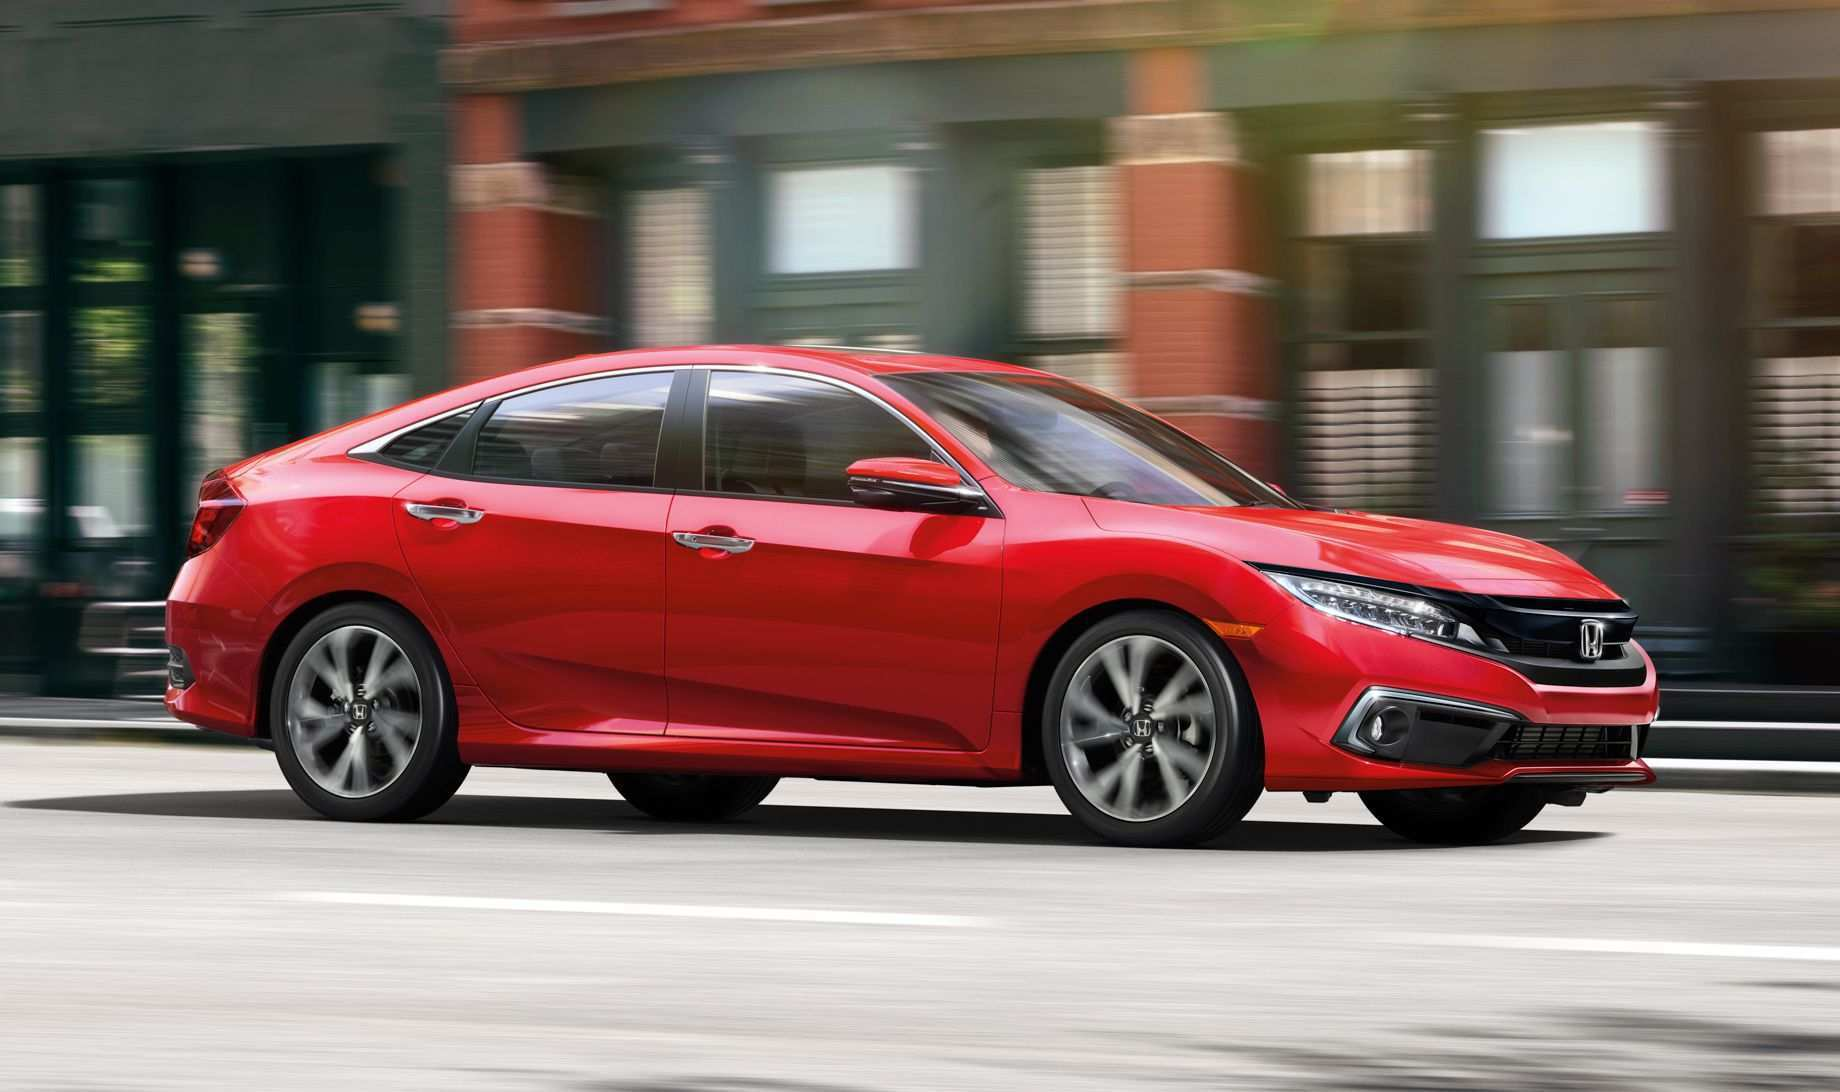 87 The Best 2019 Honda Civic Prices